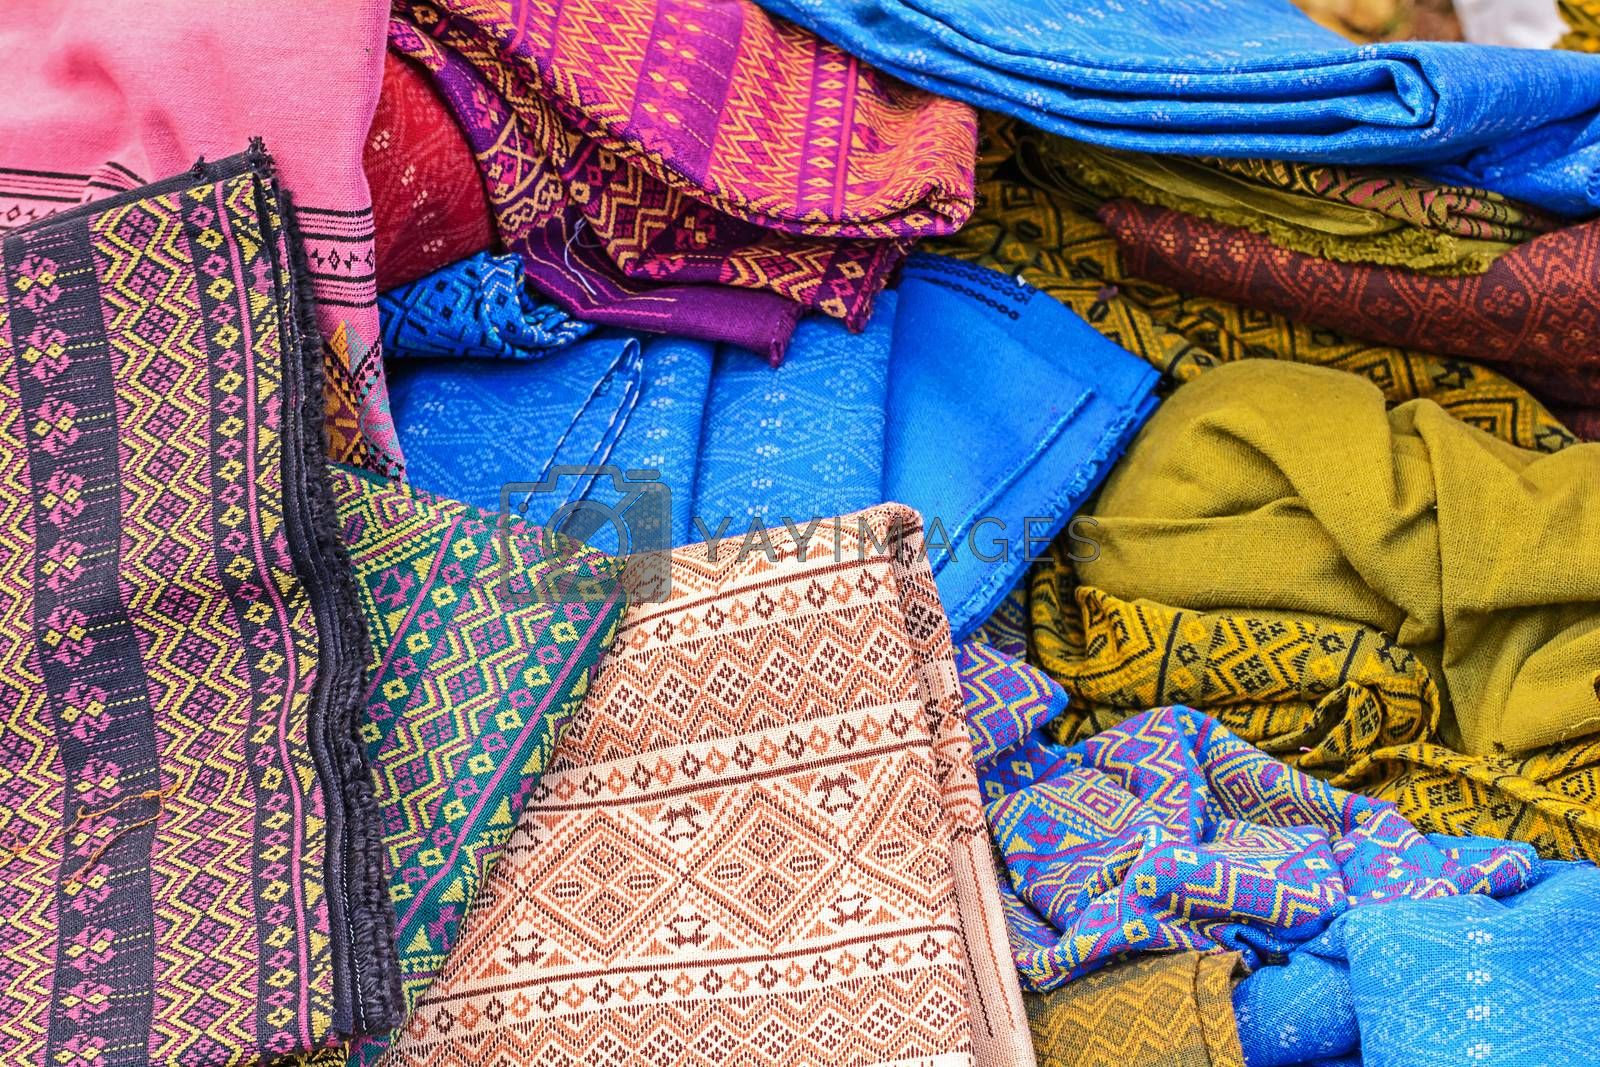 Royalty free image of stack of traditional sarong by NuwatPhoto